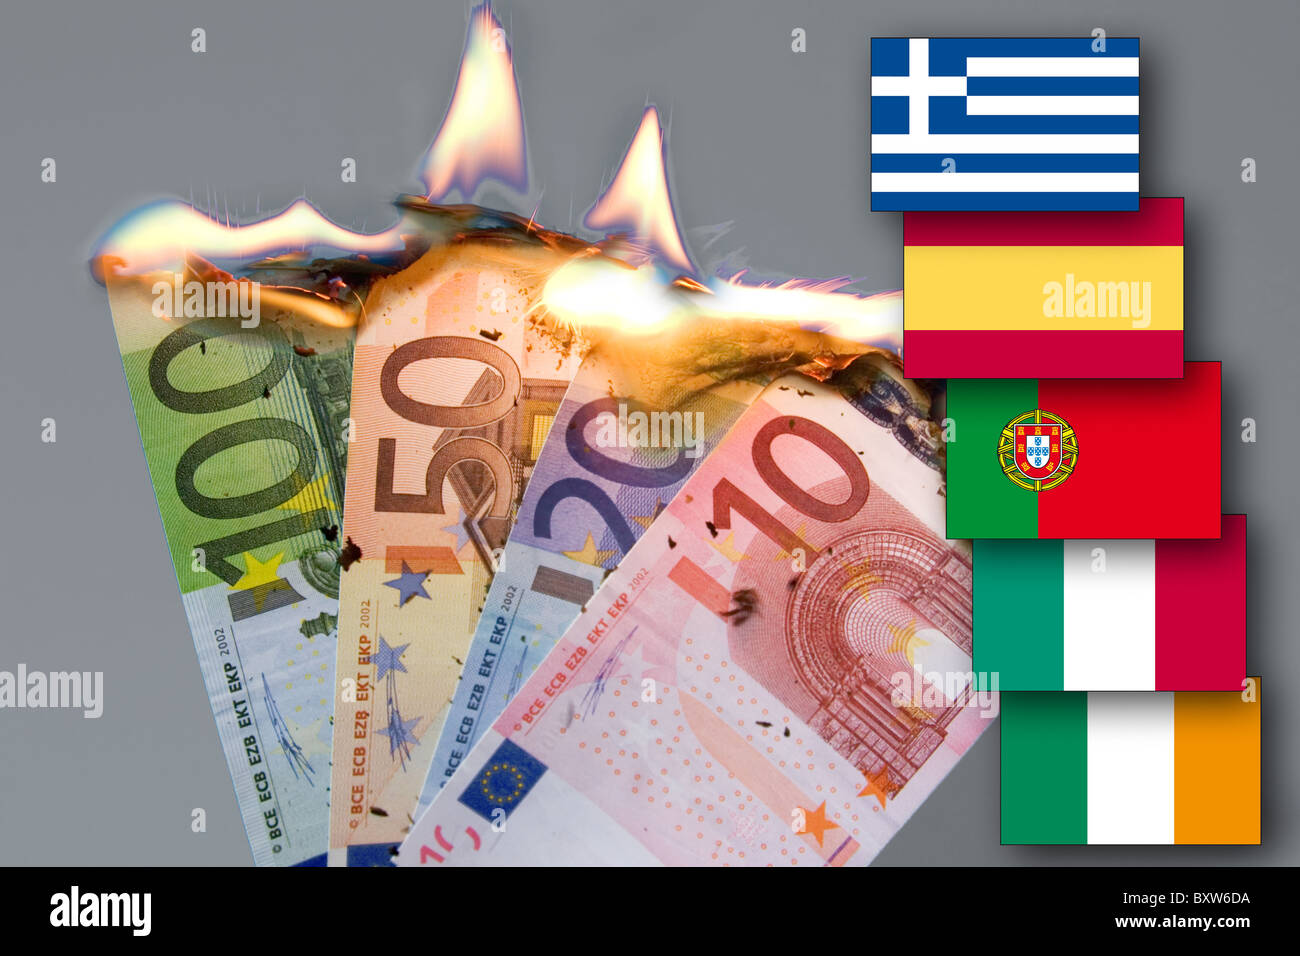 burning bank notes currency crisis of the EUR awaited collapse of the euro symbol picture its death flag pigs piigs - Stock Image